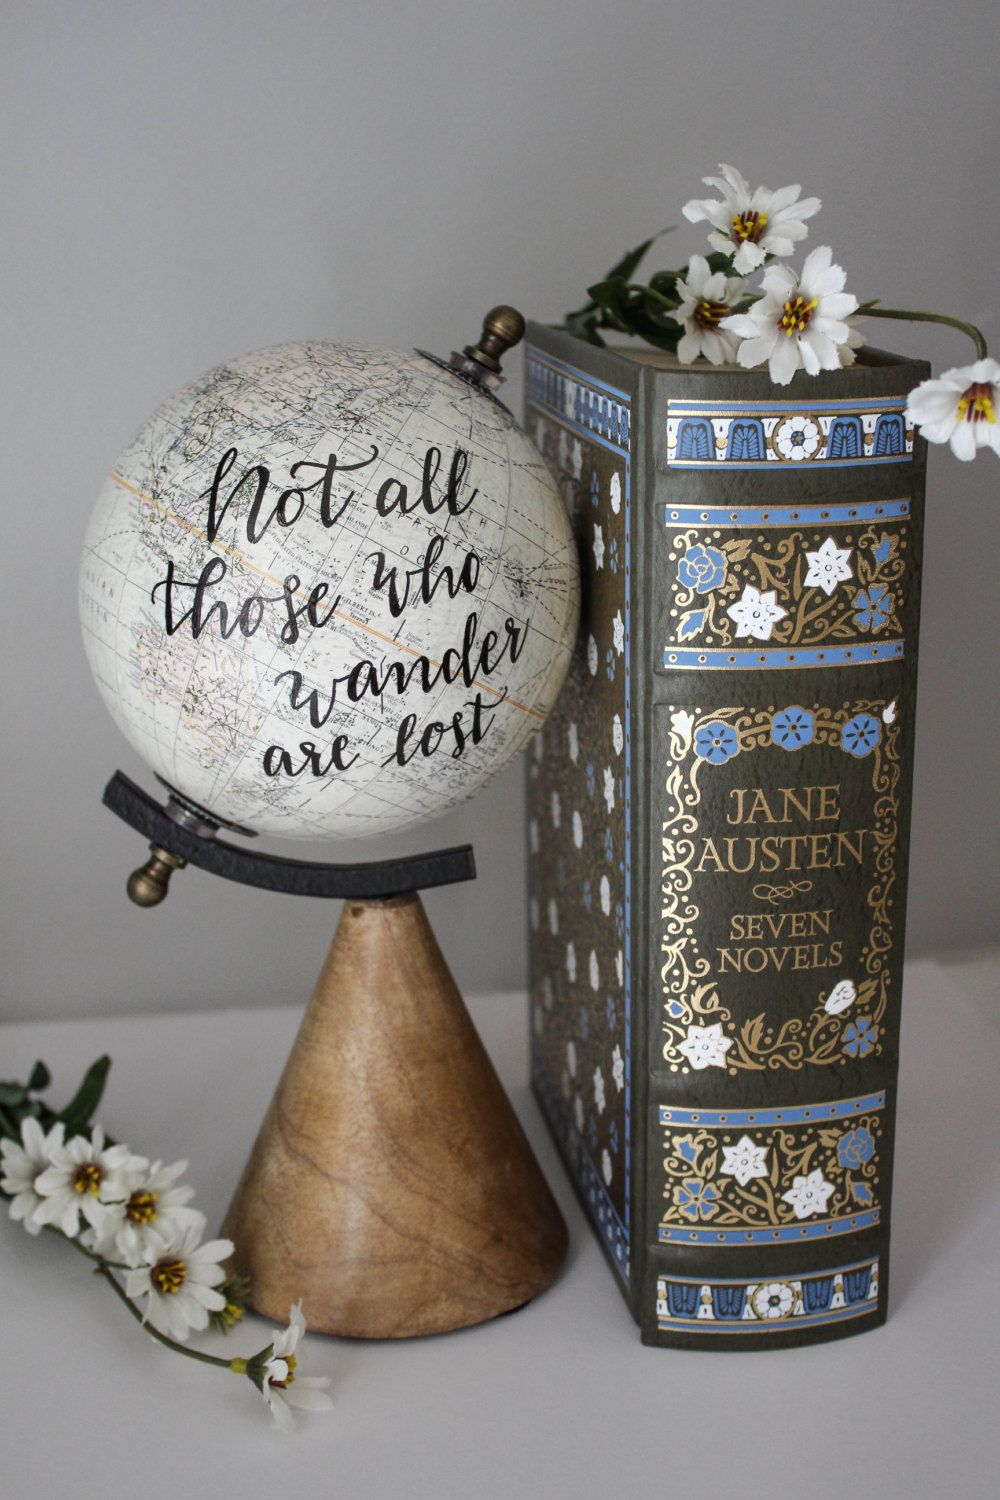 Not All Those Who Wander Are Lost Small, White Globe, Calligraphy, Travel